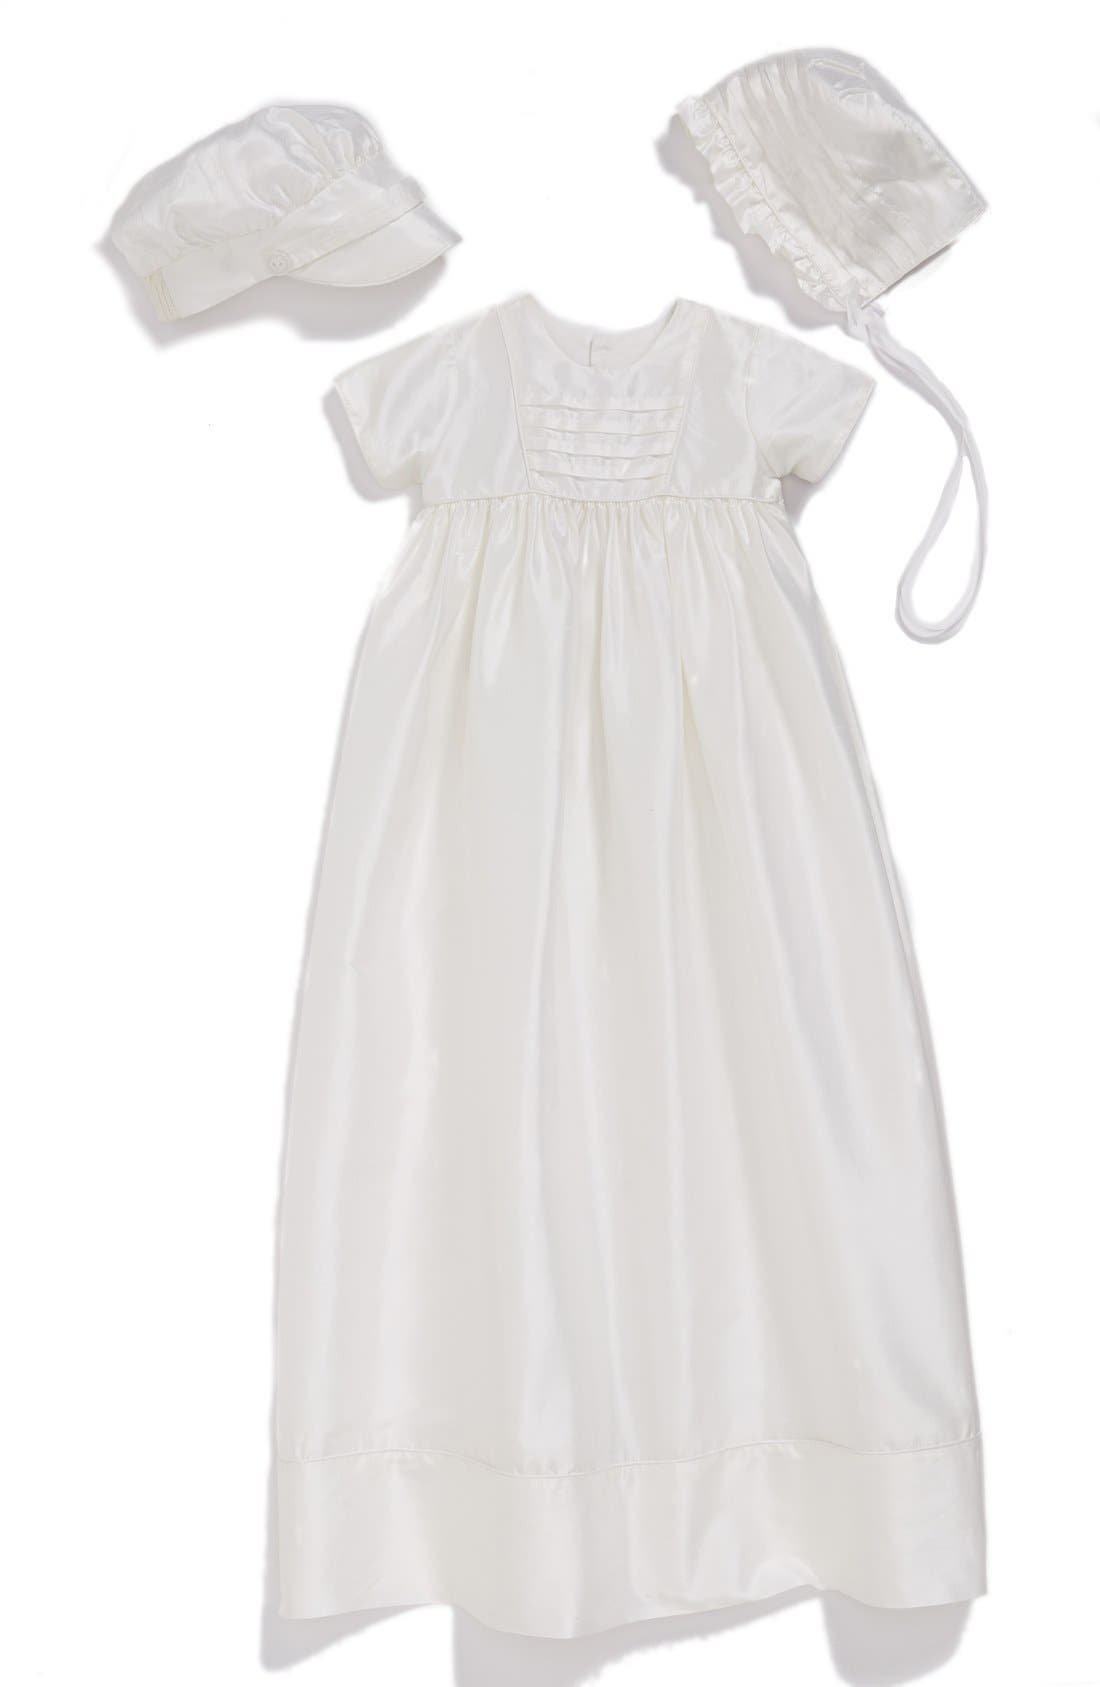 Main Image - Little Things Mean a Lot Dupioni Christening Gown with Hat and Bonnet Set (Baby)